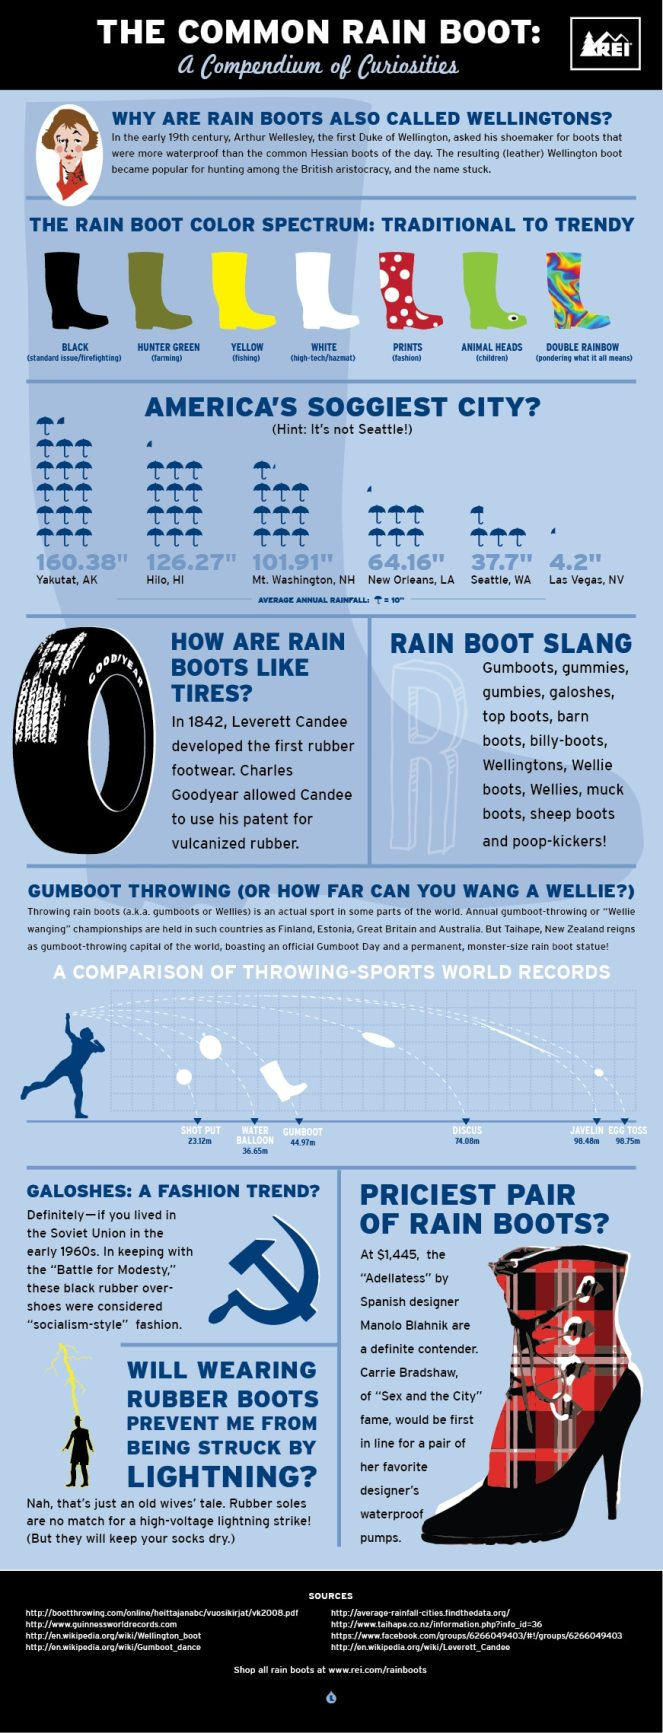 Rain Boots Infographic: Little-Known Facts About the Common Rain Boot